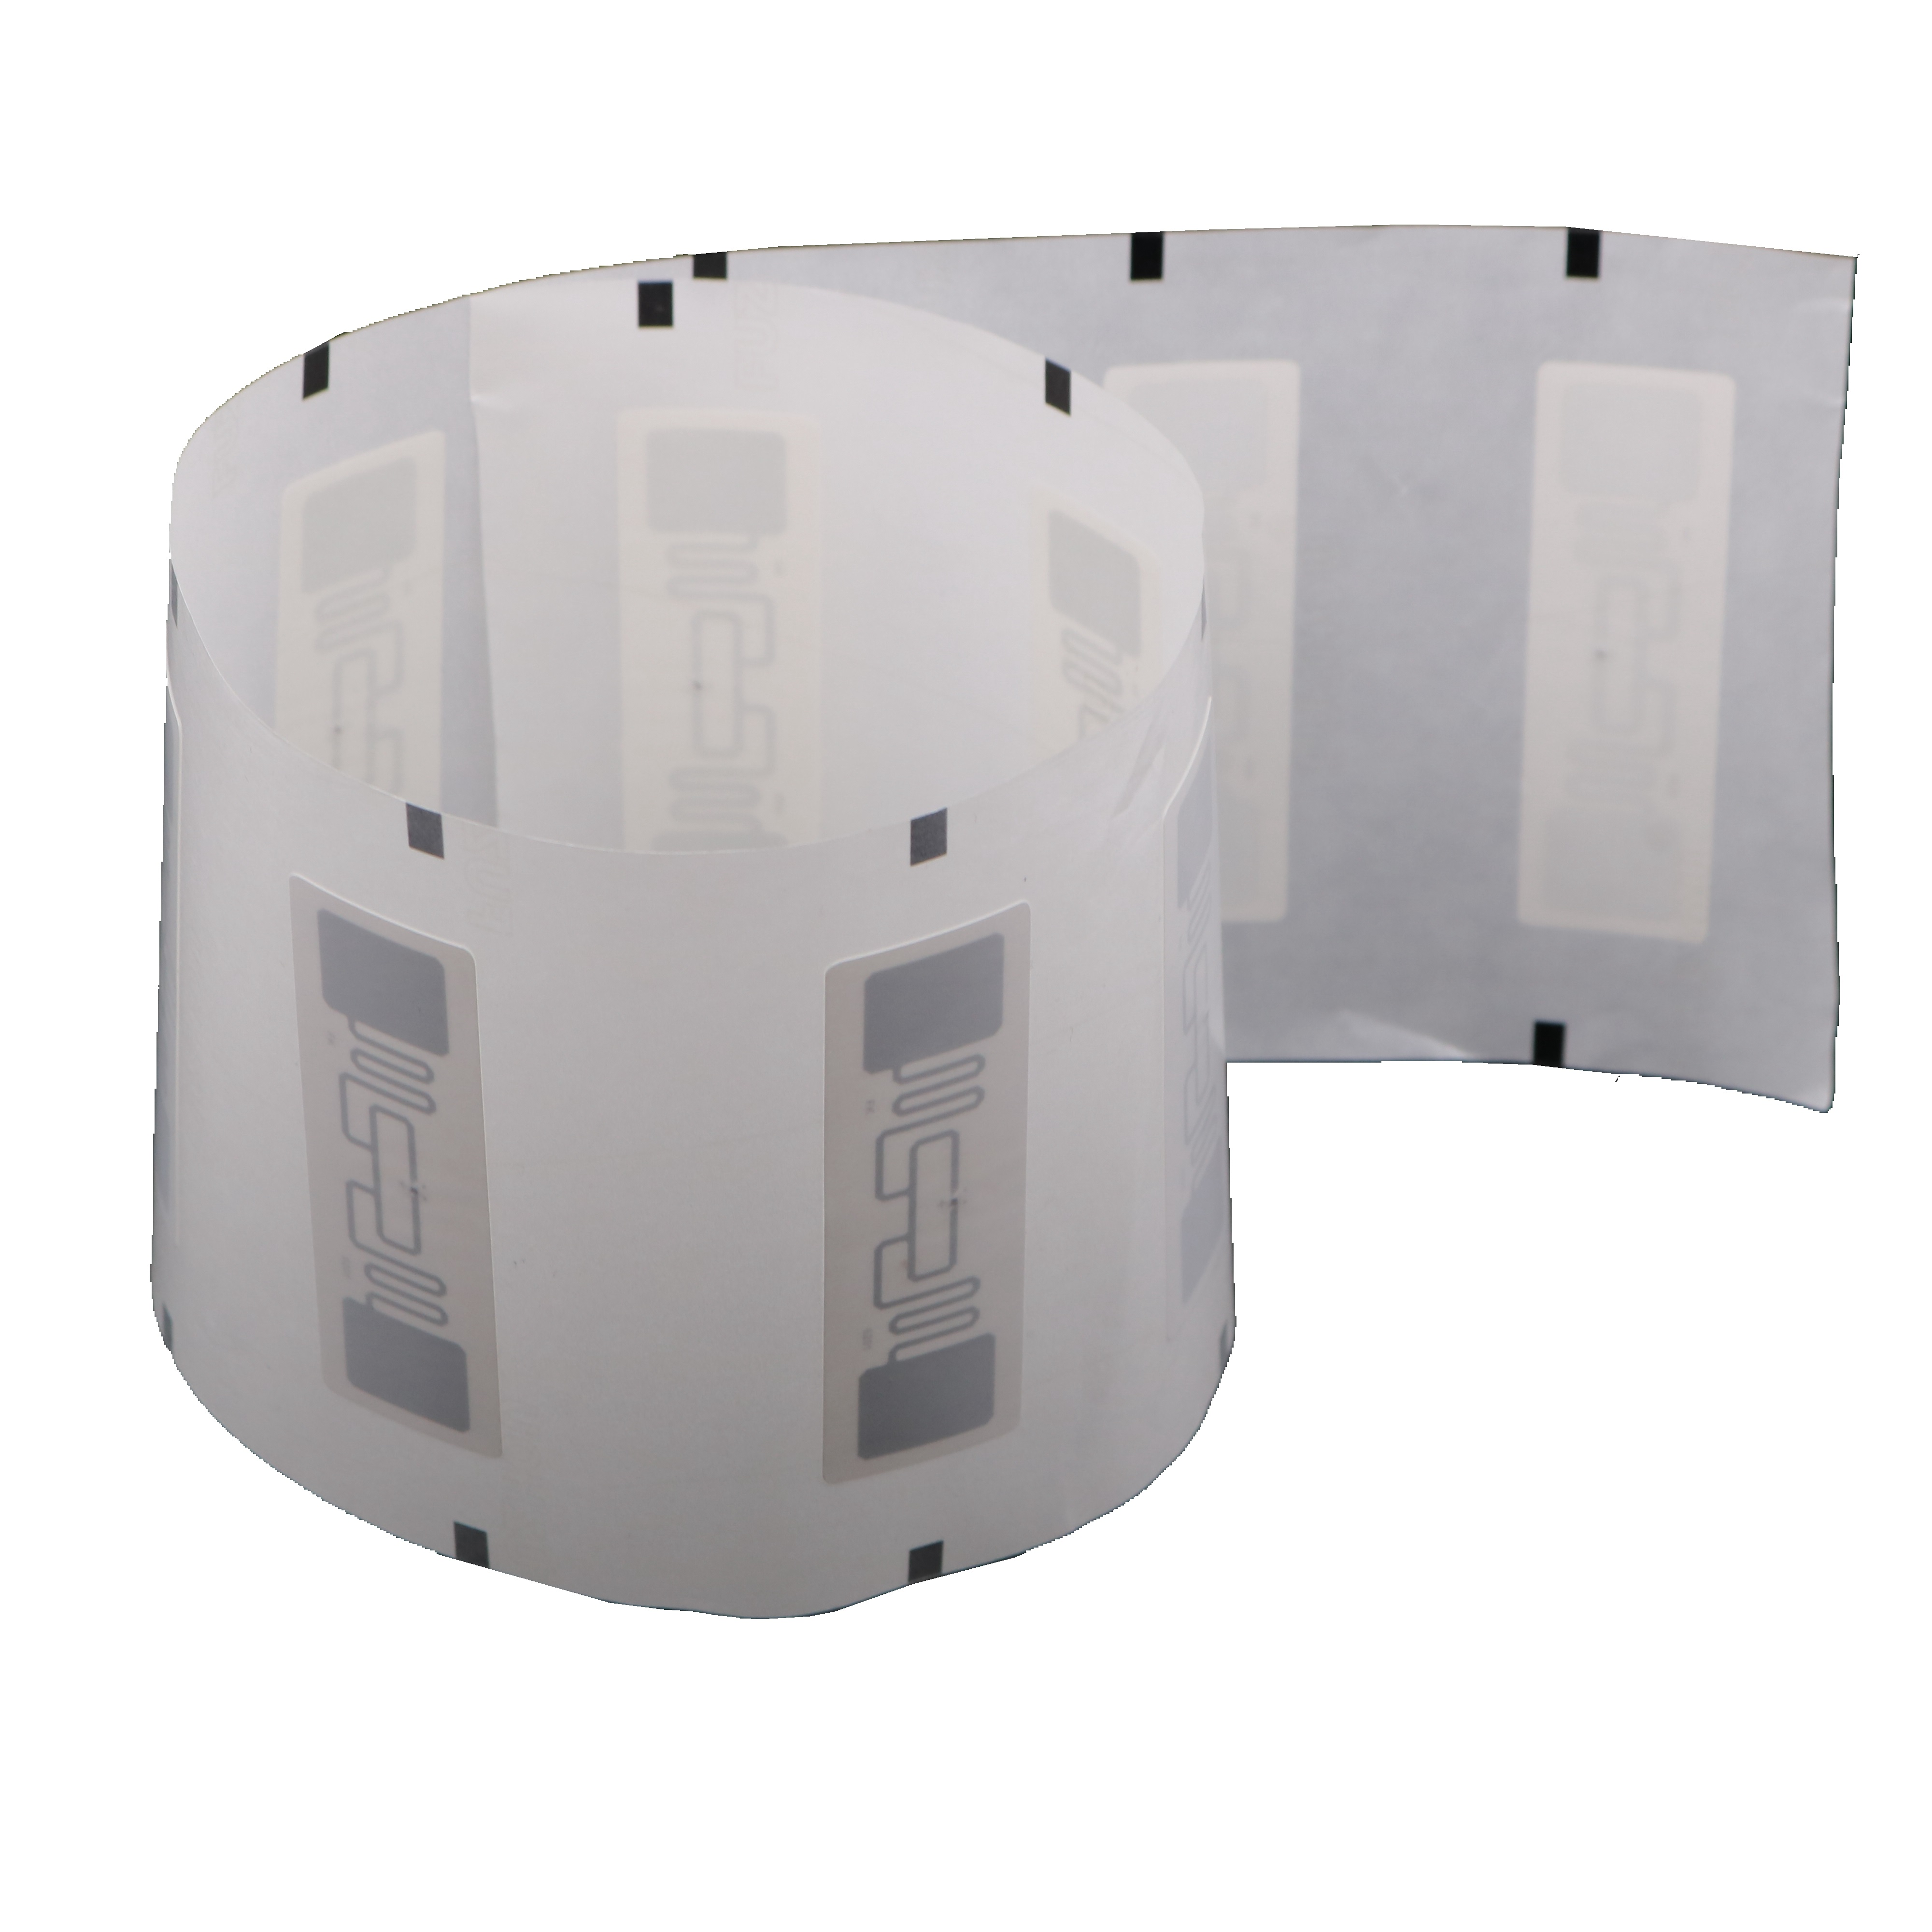 Access Control Cards Dashing Uhf 860-960mhz Uhf Rfid Tag H3 Chip Iso 18000-6c Uhf Sticker Label A Plastic Case Is Compartmentalized For Safe Storage Back To Search Resultssecurity & Protection